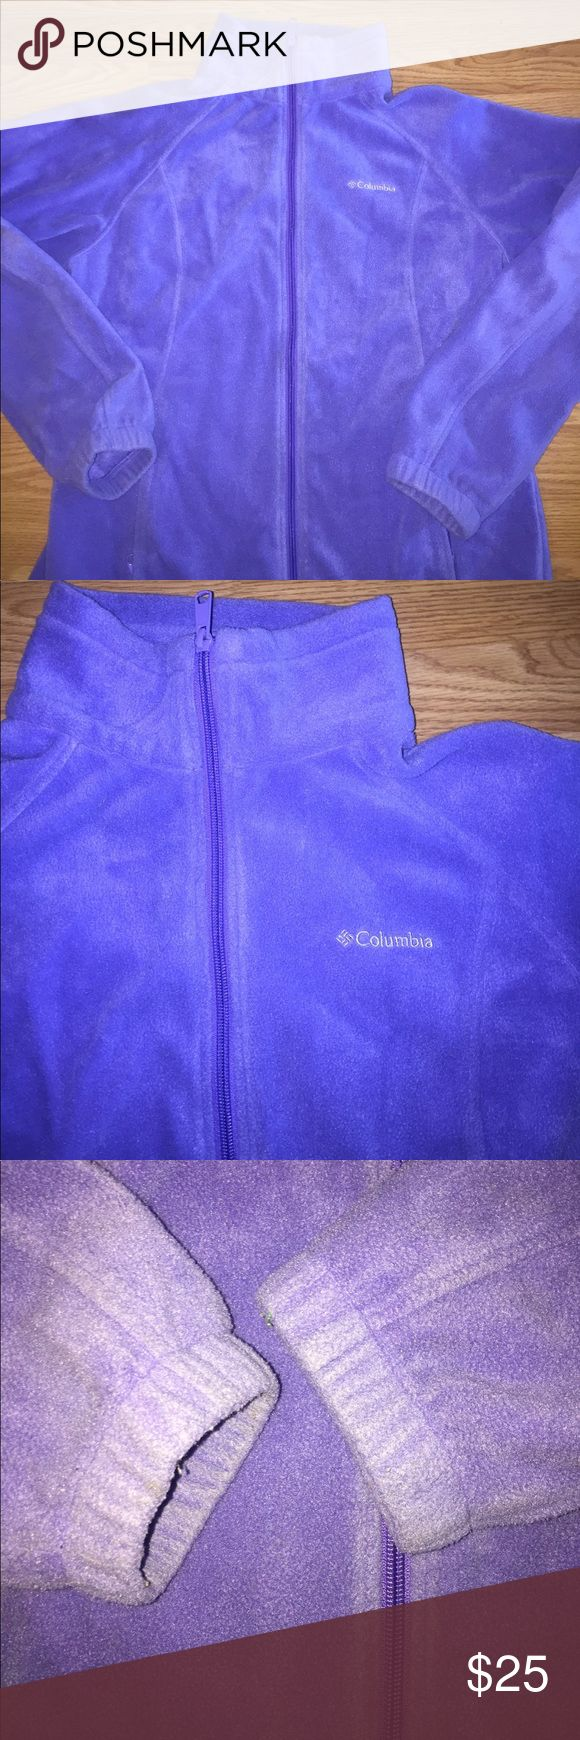 COLUMBIA purple zip up fleece jacket women large COLUMBIA brand. full zip up fleece jacket. Ladies / women size large. Zipper pockets in front. Elastic drawstring at bottom. Great condition! No holes or stains. This is a light purple/Lilac color jacket! The pictures make it look more blue than it actually is. This picture of the sleeves is a more accurate depiction of the jacket color! Bundle with another item in my closet for a discount! Columbia Jackets & Coats